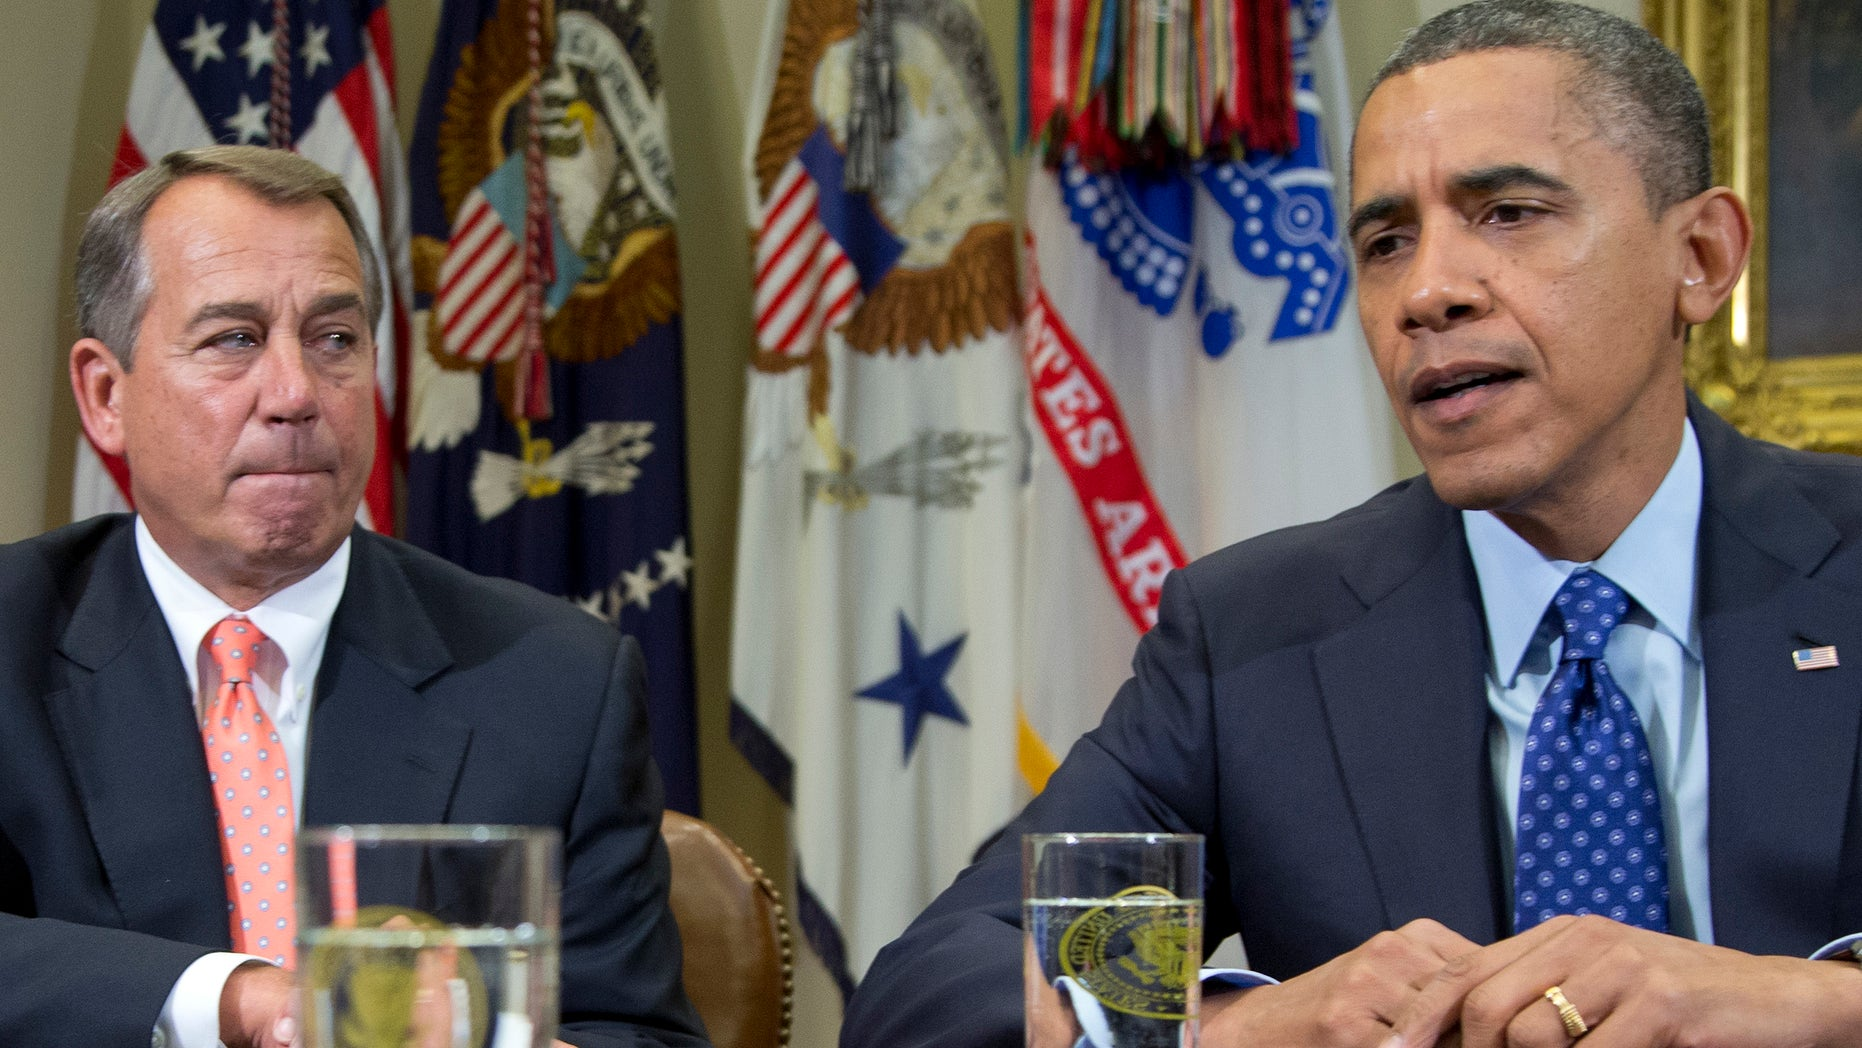 In this Nov. 16, 2012 file photo, President Barack Obama, accompanied by House Speaker John Boehner of Ohio, speaks to reporters in the Roosevelt Room of the White House in Washington, as he hosted a meeting of the bipartisan, bicameral leadership of Congress to discuss the deficit and economy in Washington.